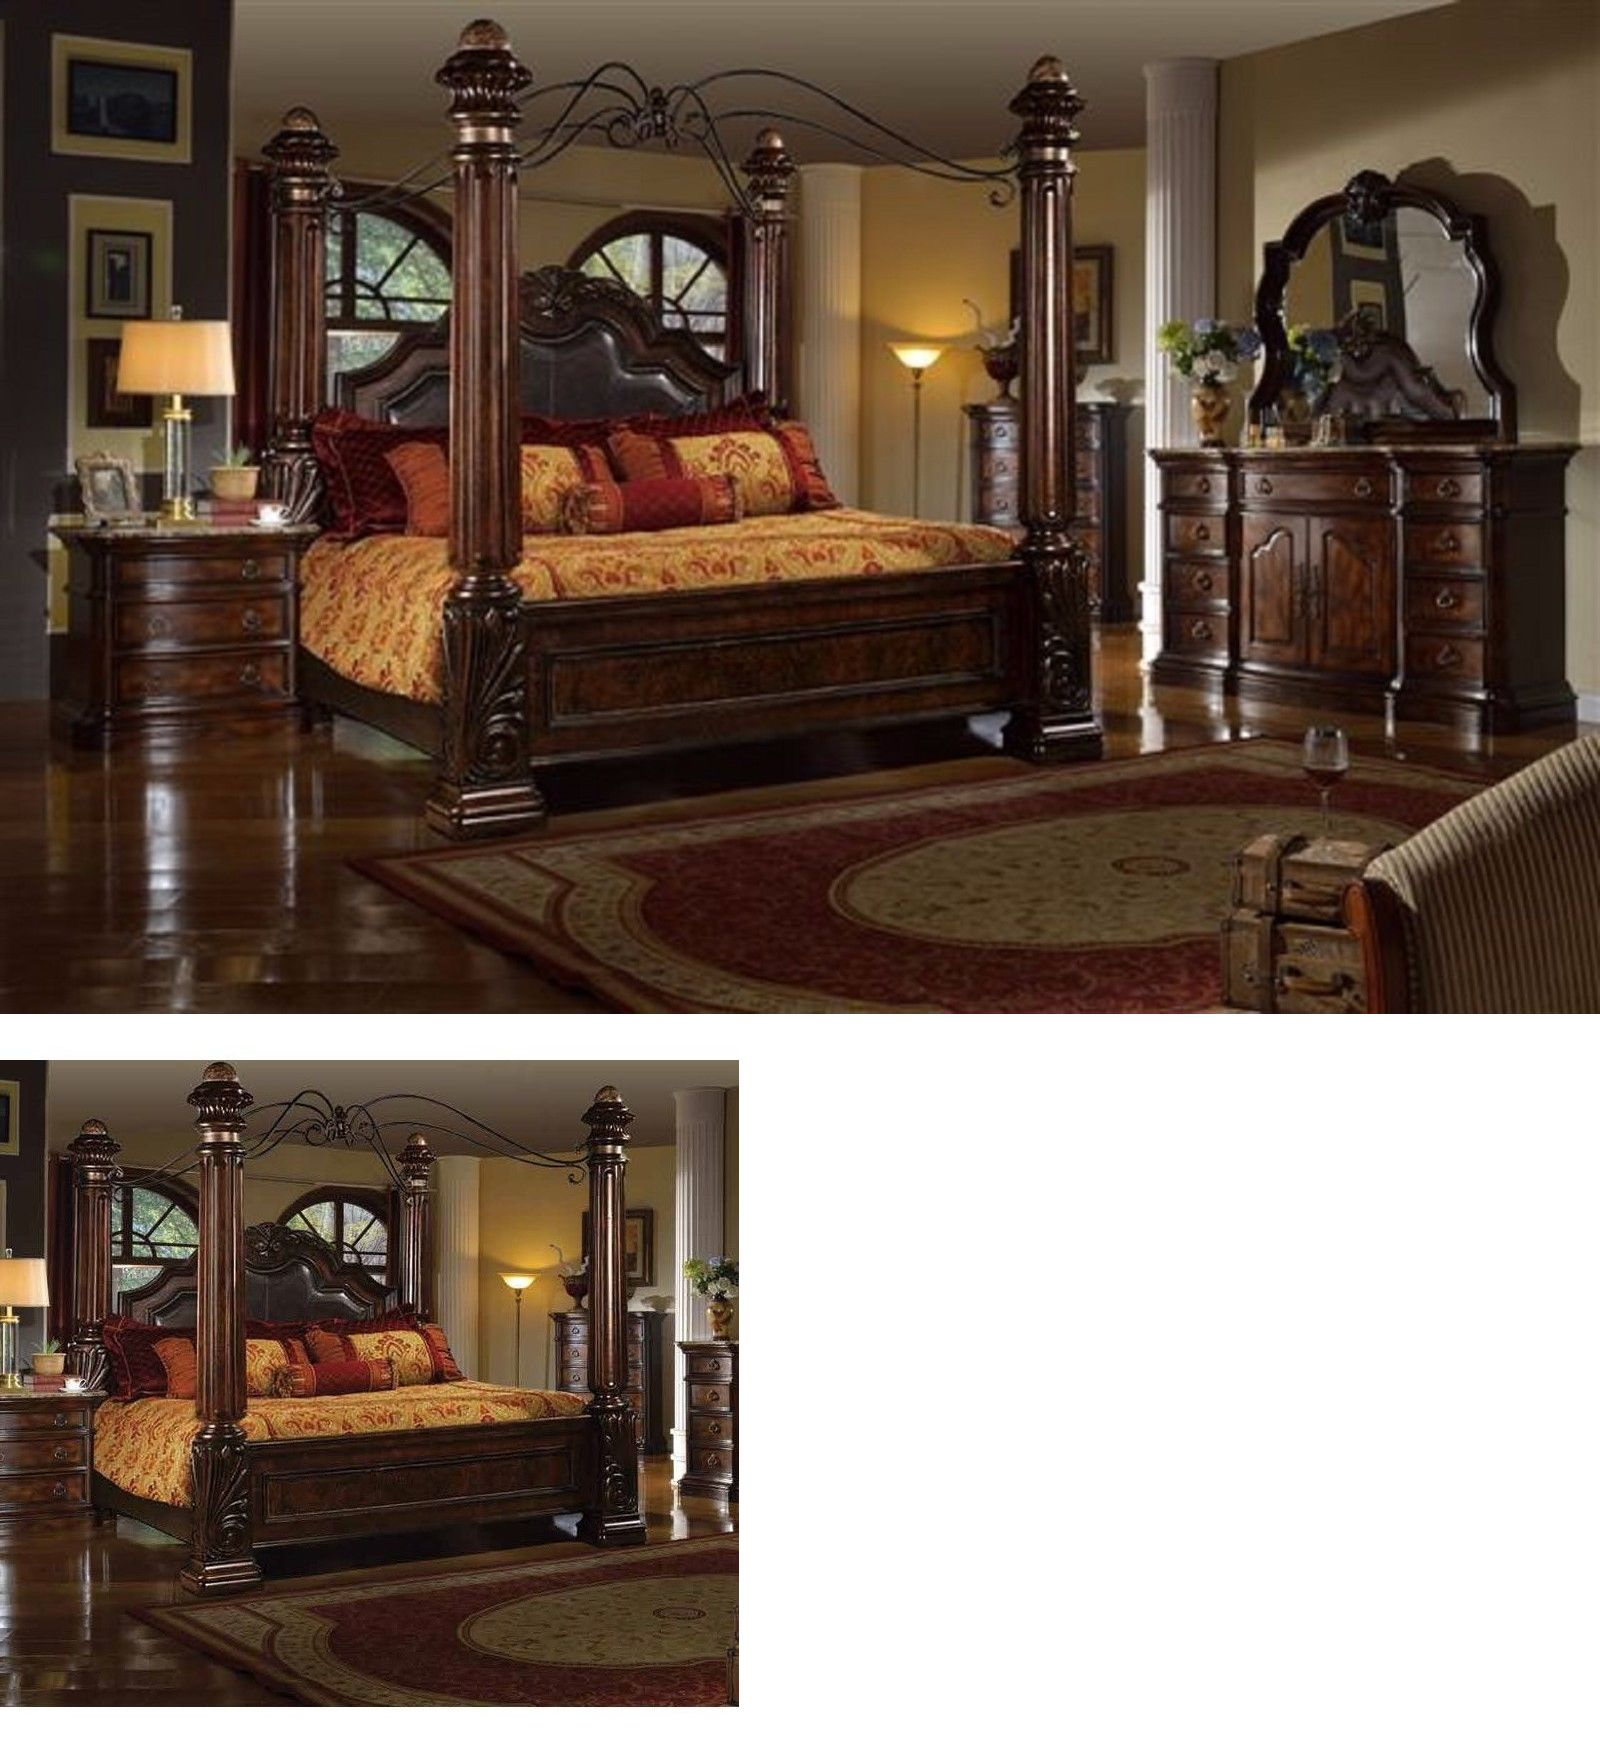 bedding mcferran rb6003 tuscan leather eastern king size on Mcferran Canopy Bed id=70426